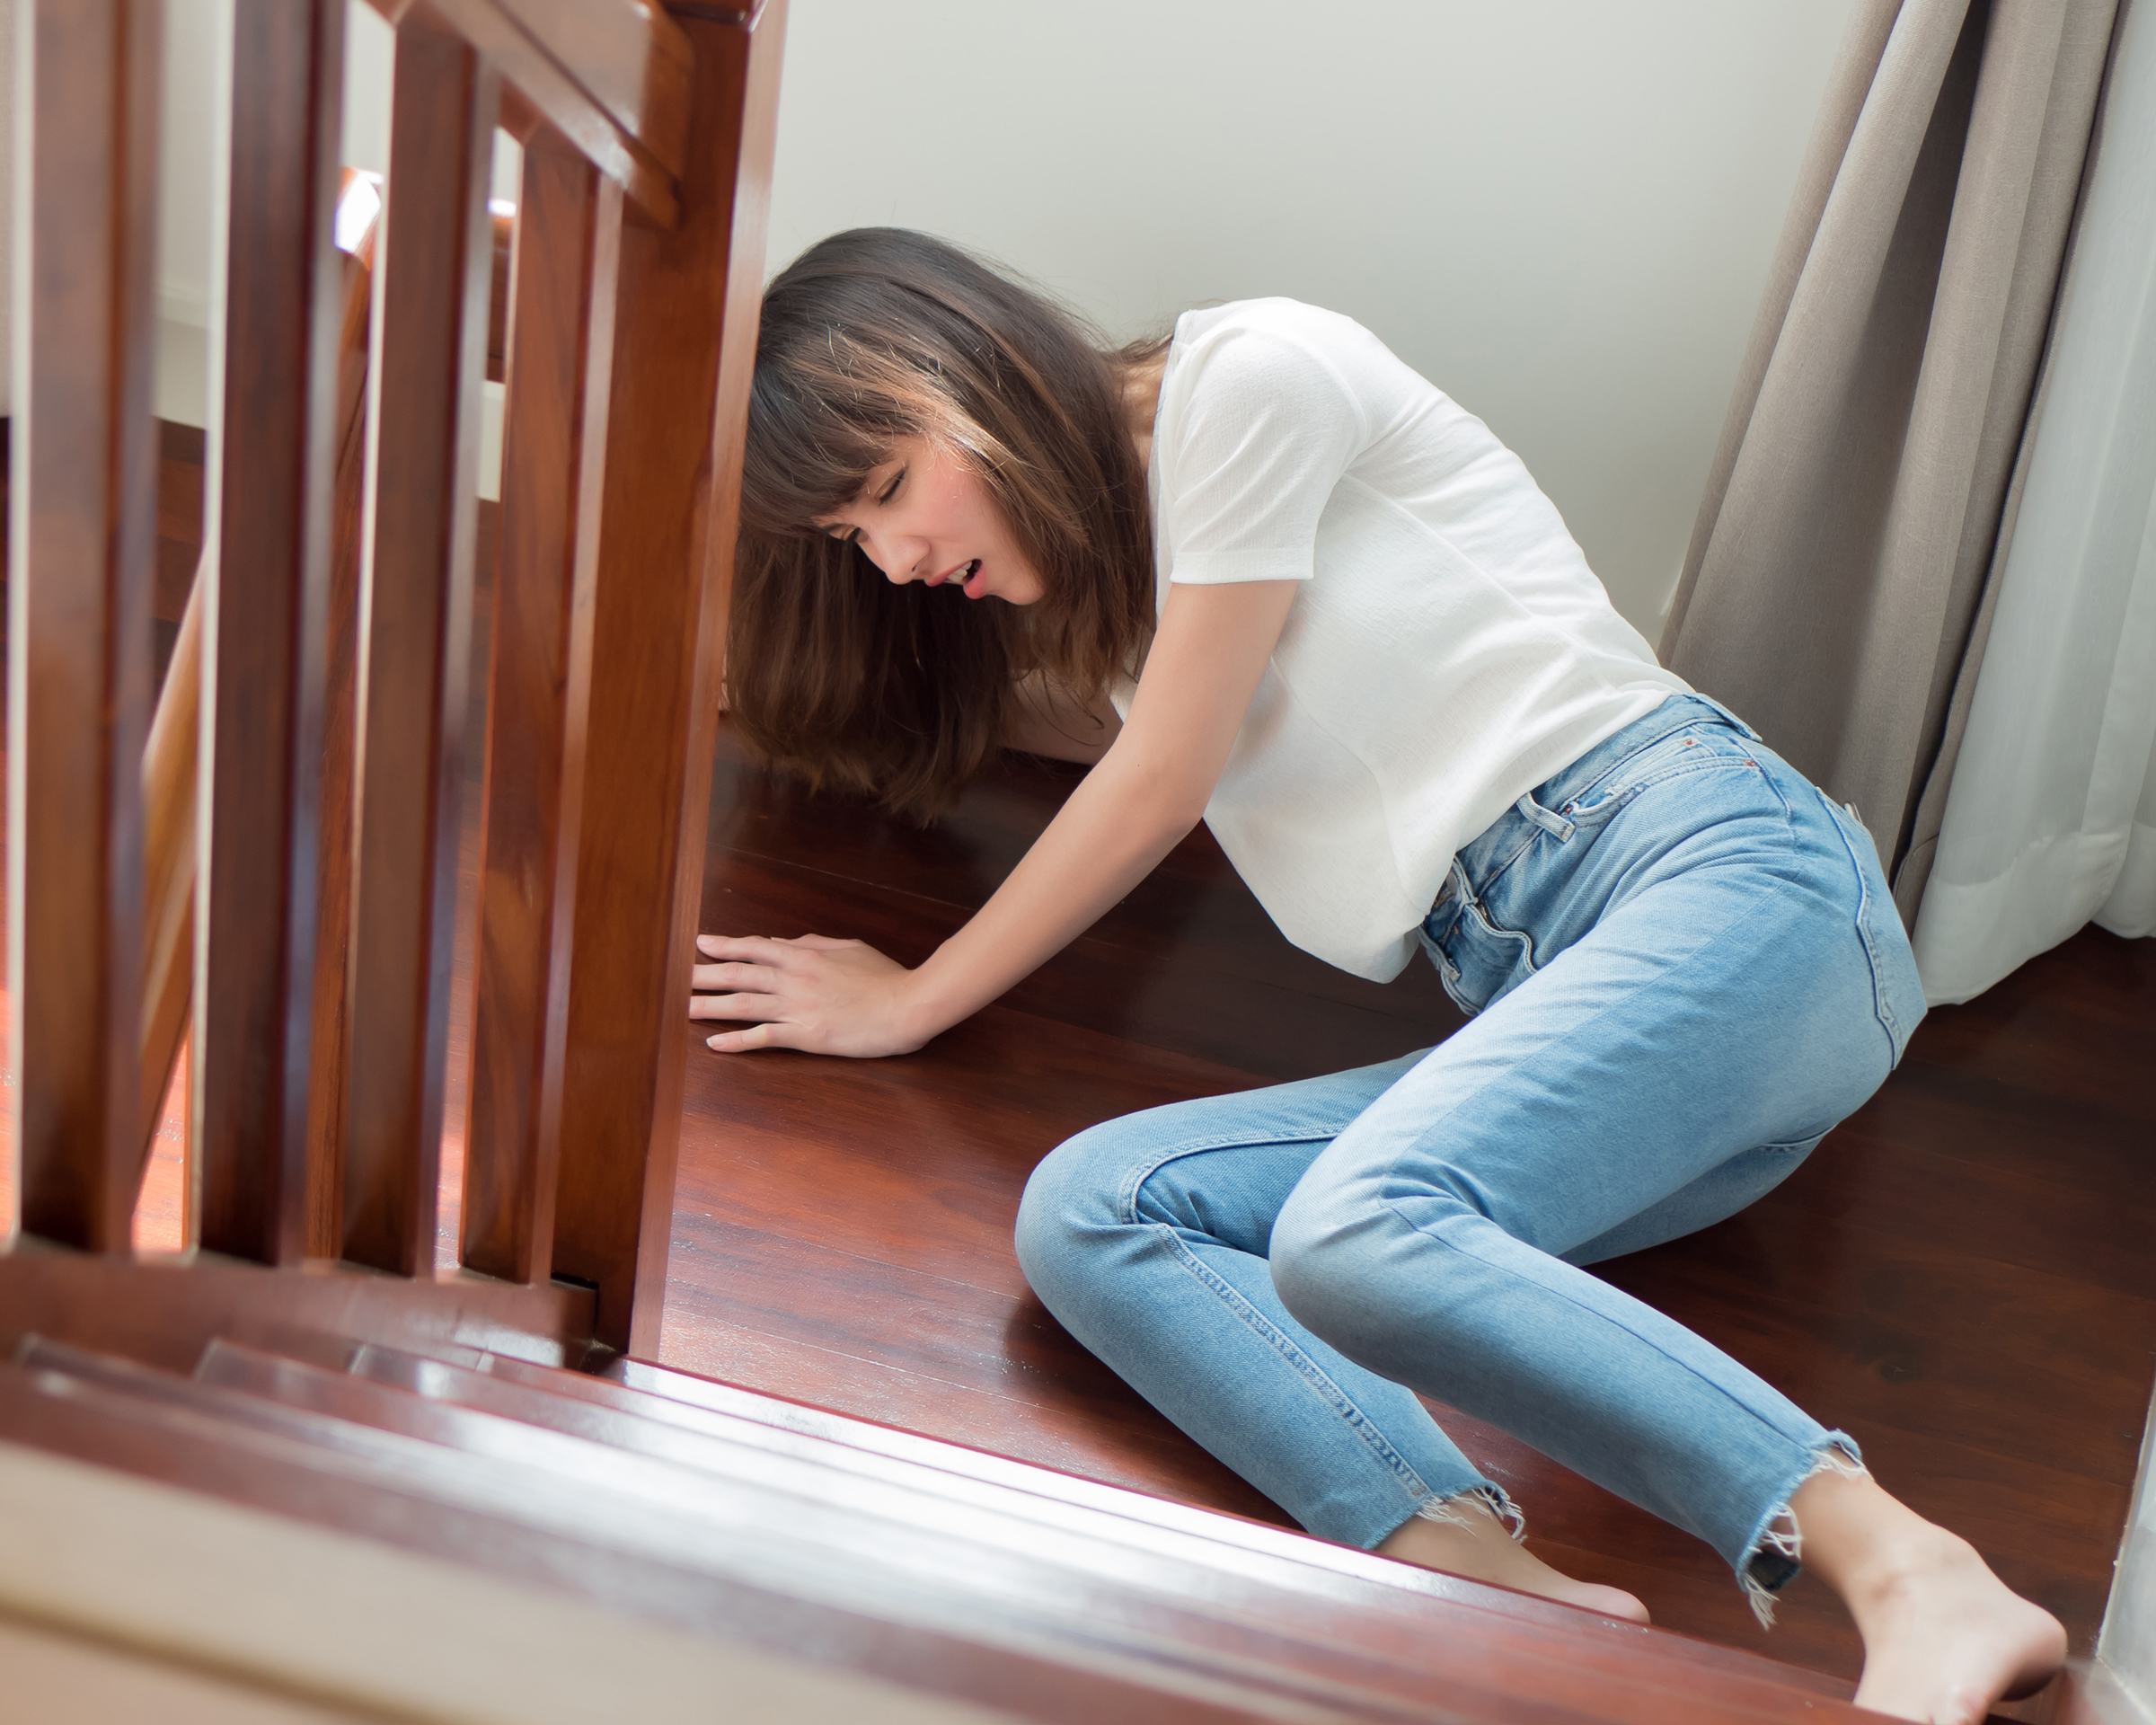 Woman in blue jeans and a white top laying on ground after falling down stairs - Spitzer Legal Slip & Fall Injury Practice Area